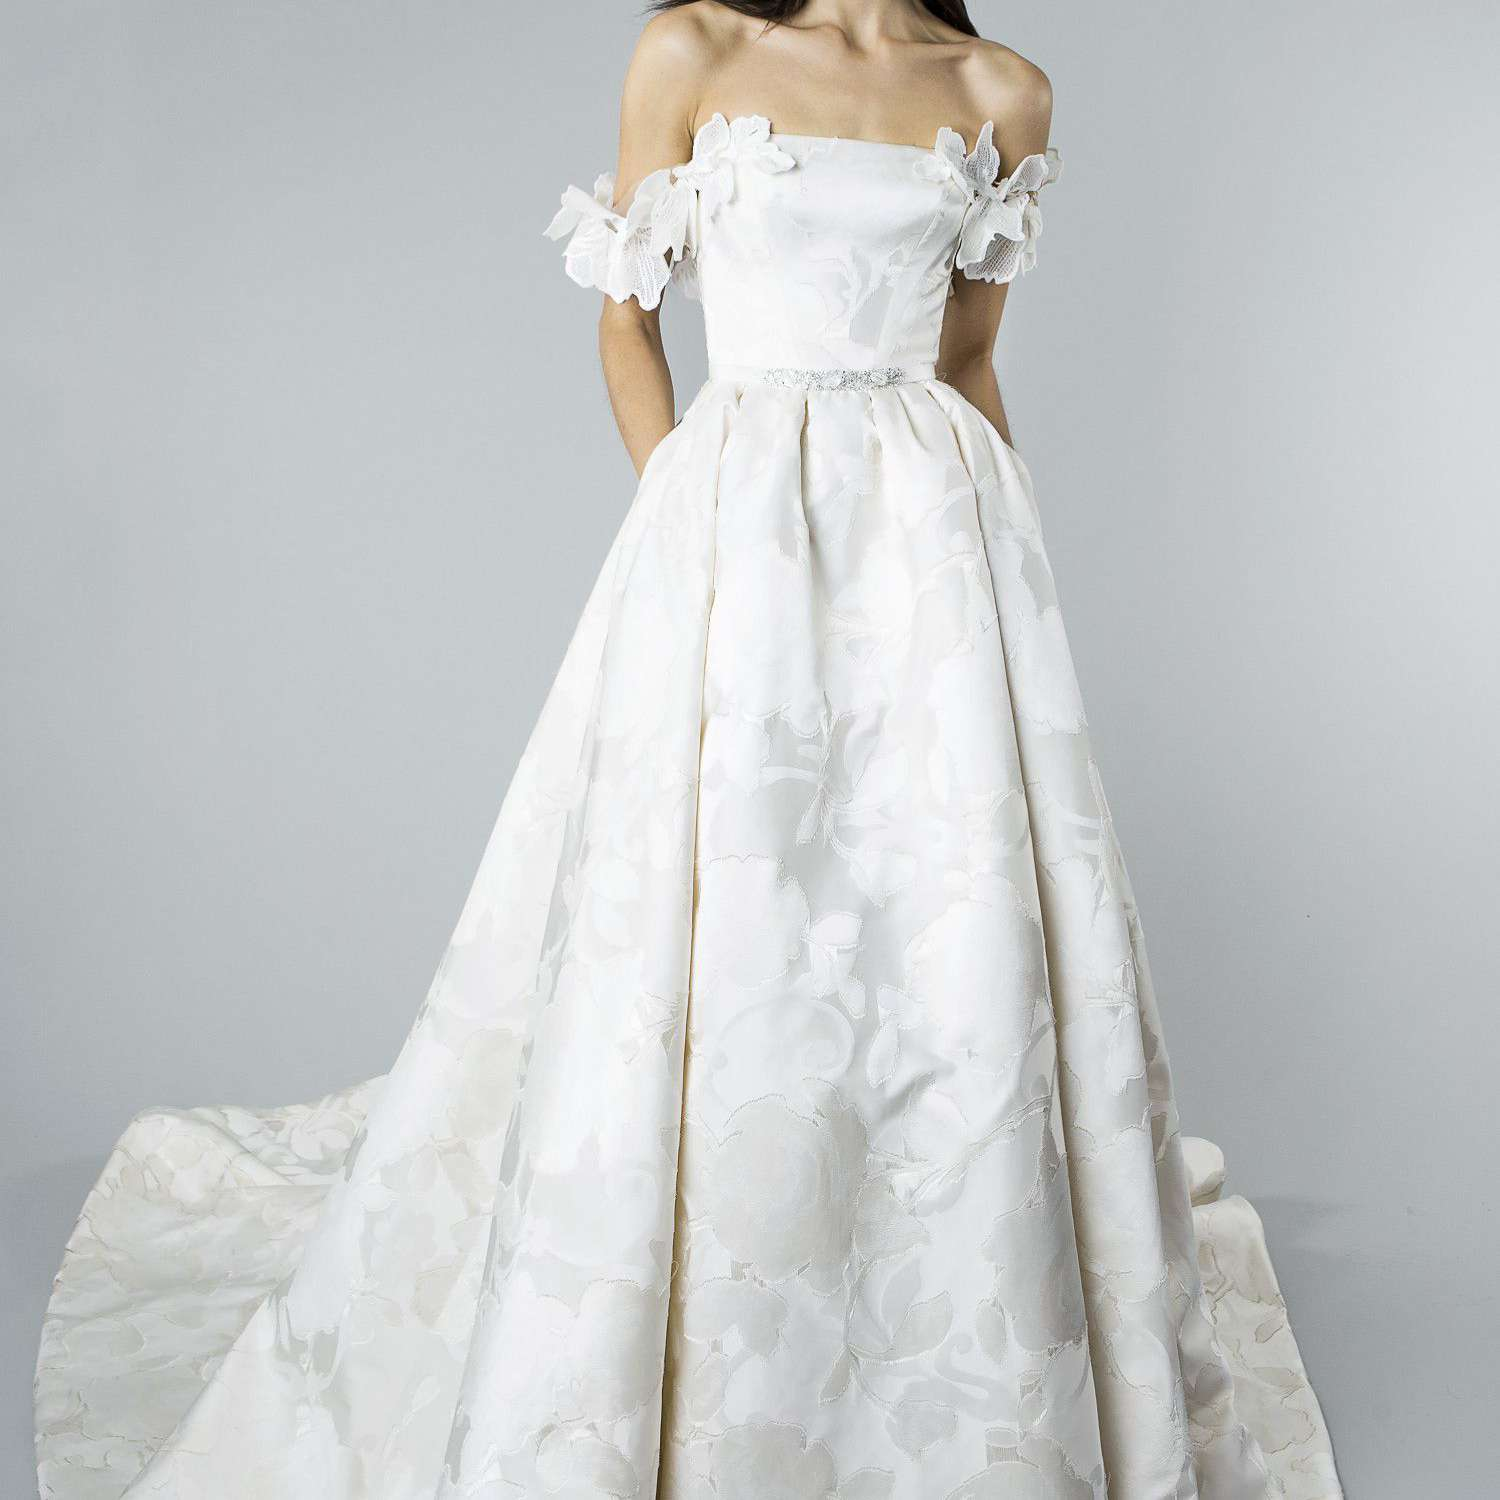 Model in Ivory Silk Fils Coupe Rose Motif Ballgown with Floral Drape Cap Sleeve